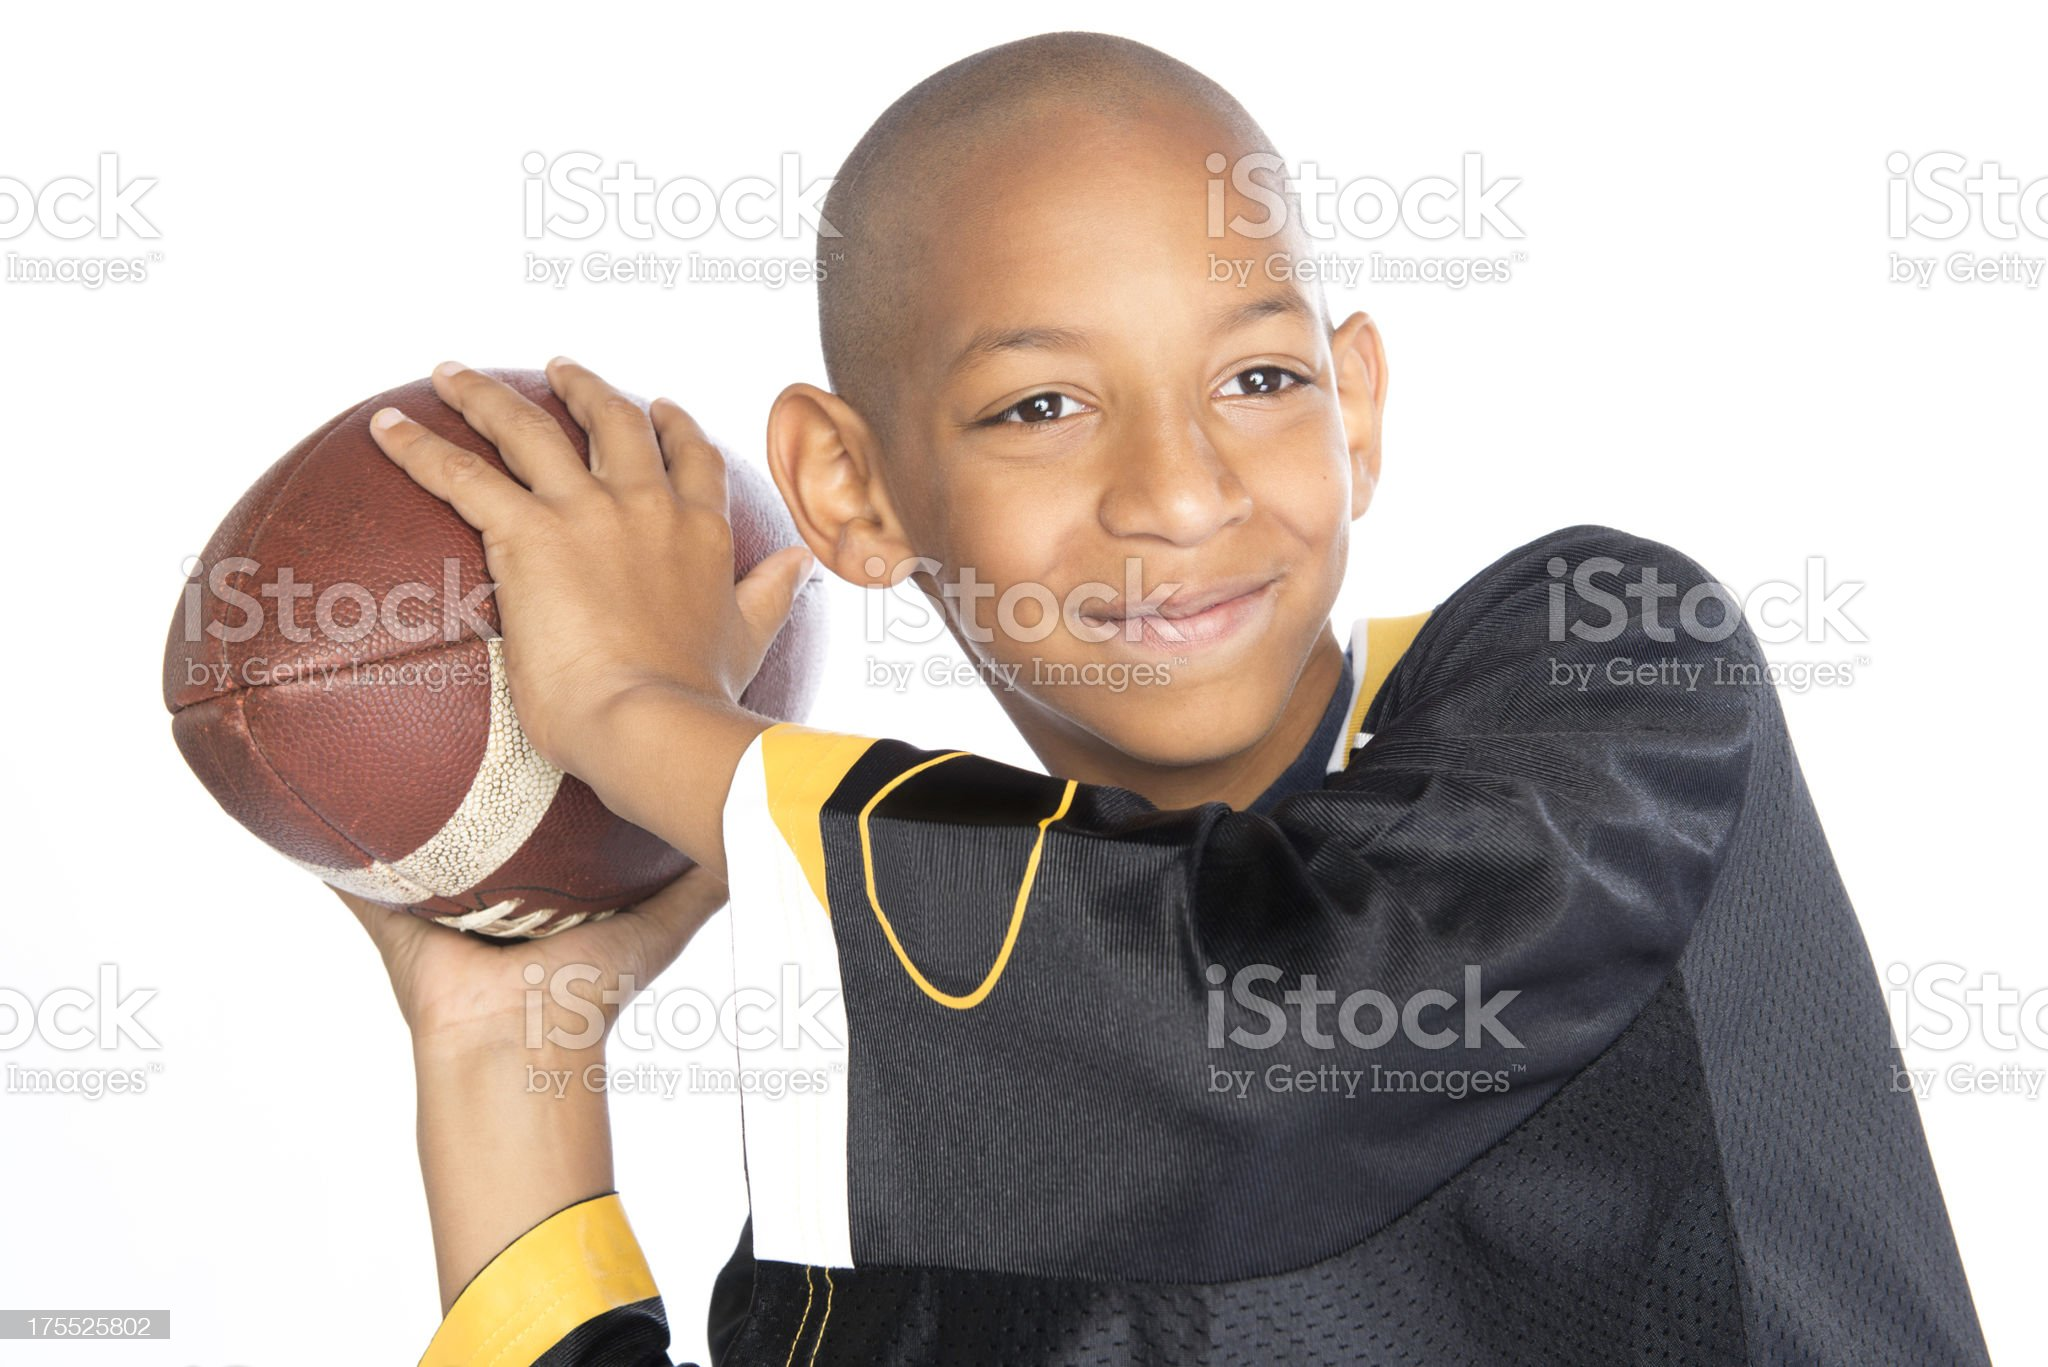 Young boy throwing a football royalty-free stock photo